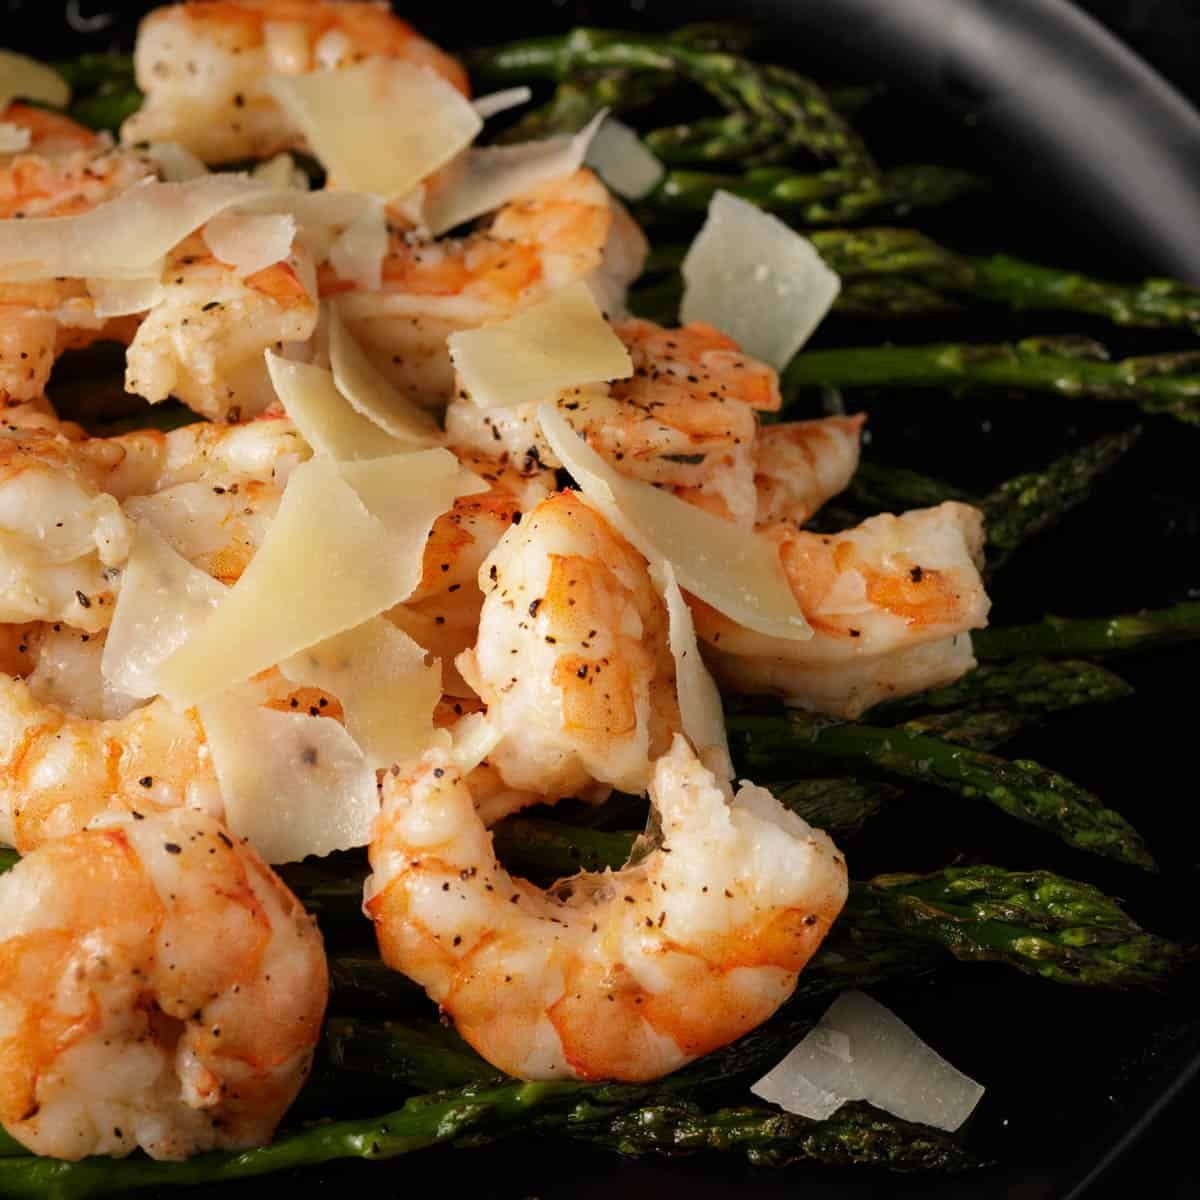 A platter of oven roasted shrimp and asparagus